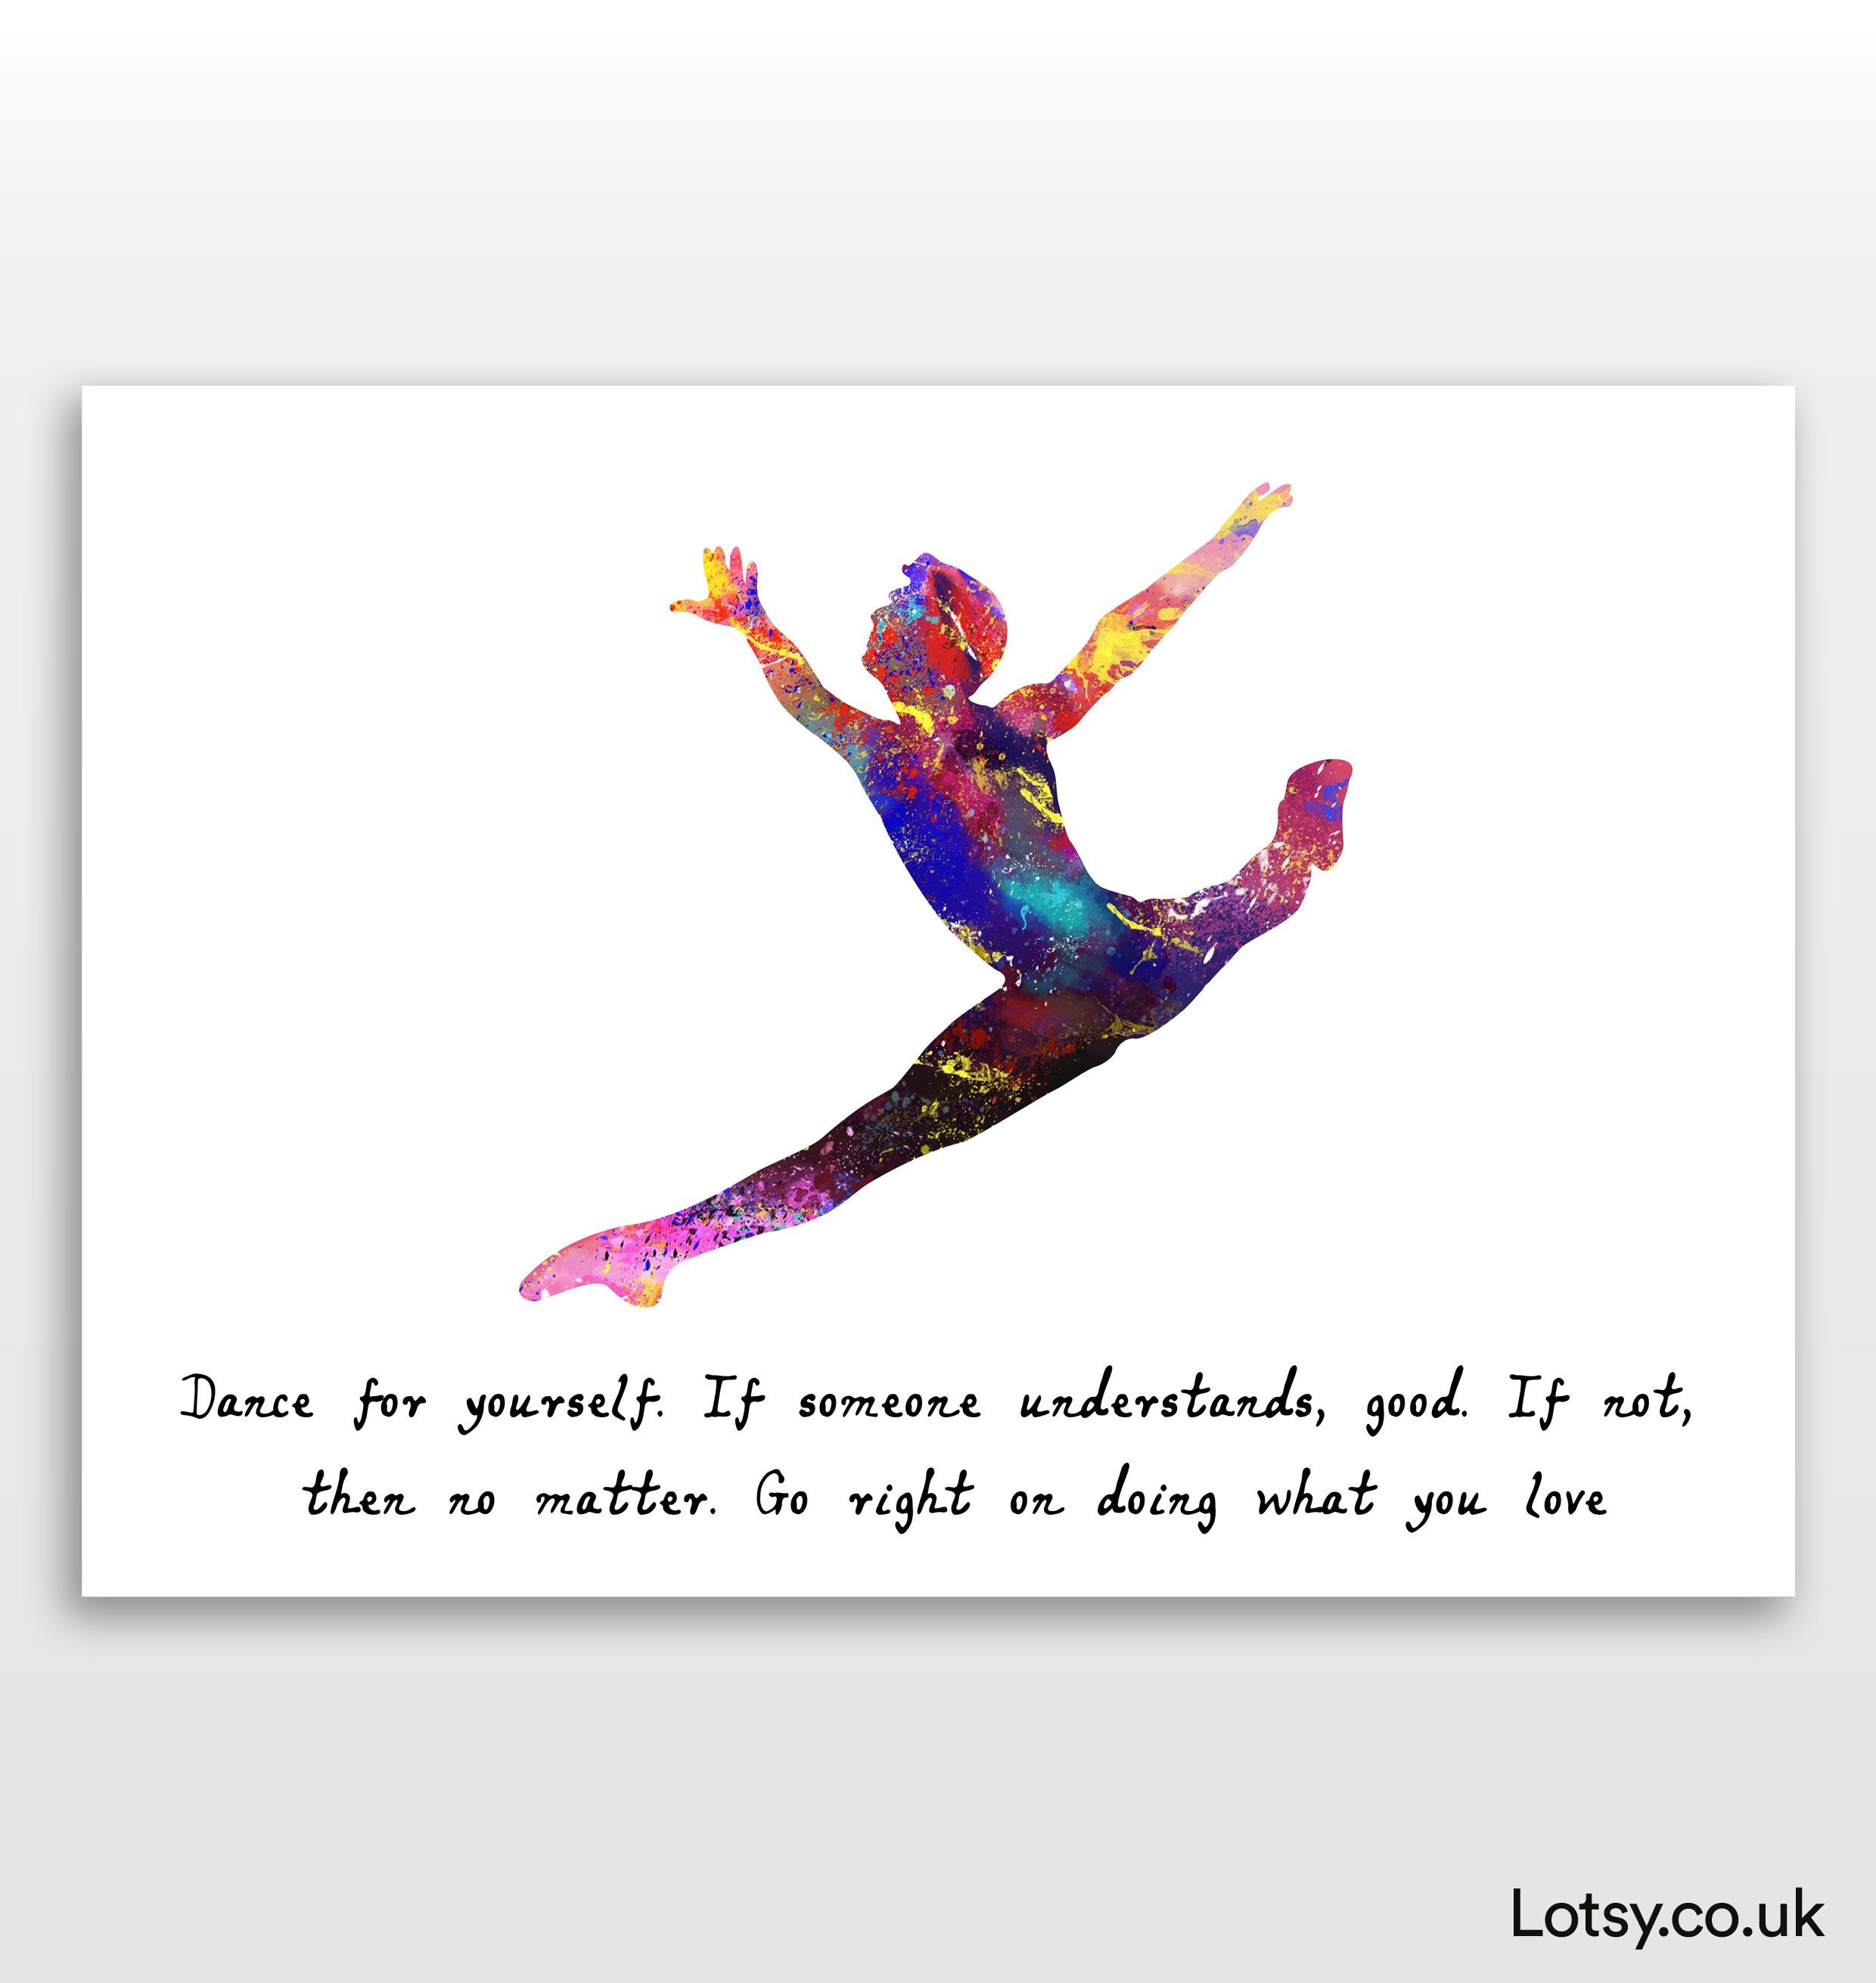 Ballet Quote - Dance for yourself - A3 - (297mm x 420mm) (11.7inch x 16.5inch)